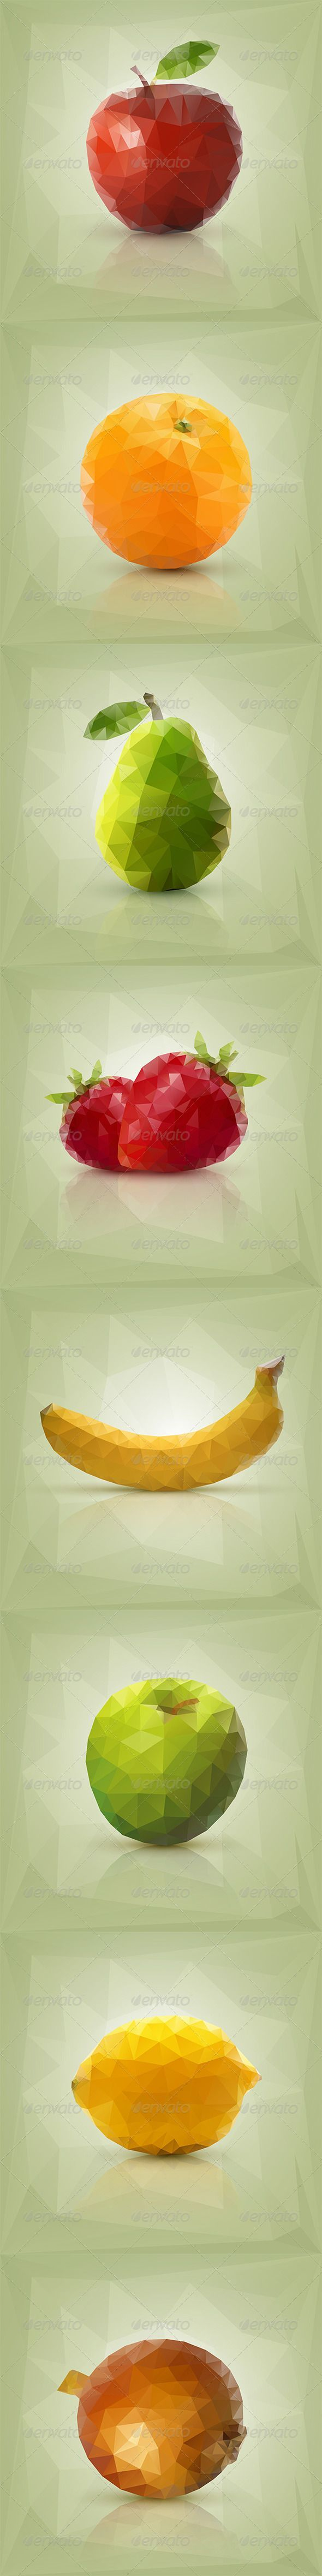 Triangle Polygon Fruit Vector Illustrations - Food Objects